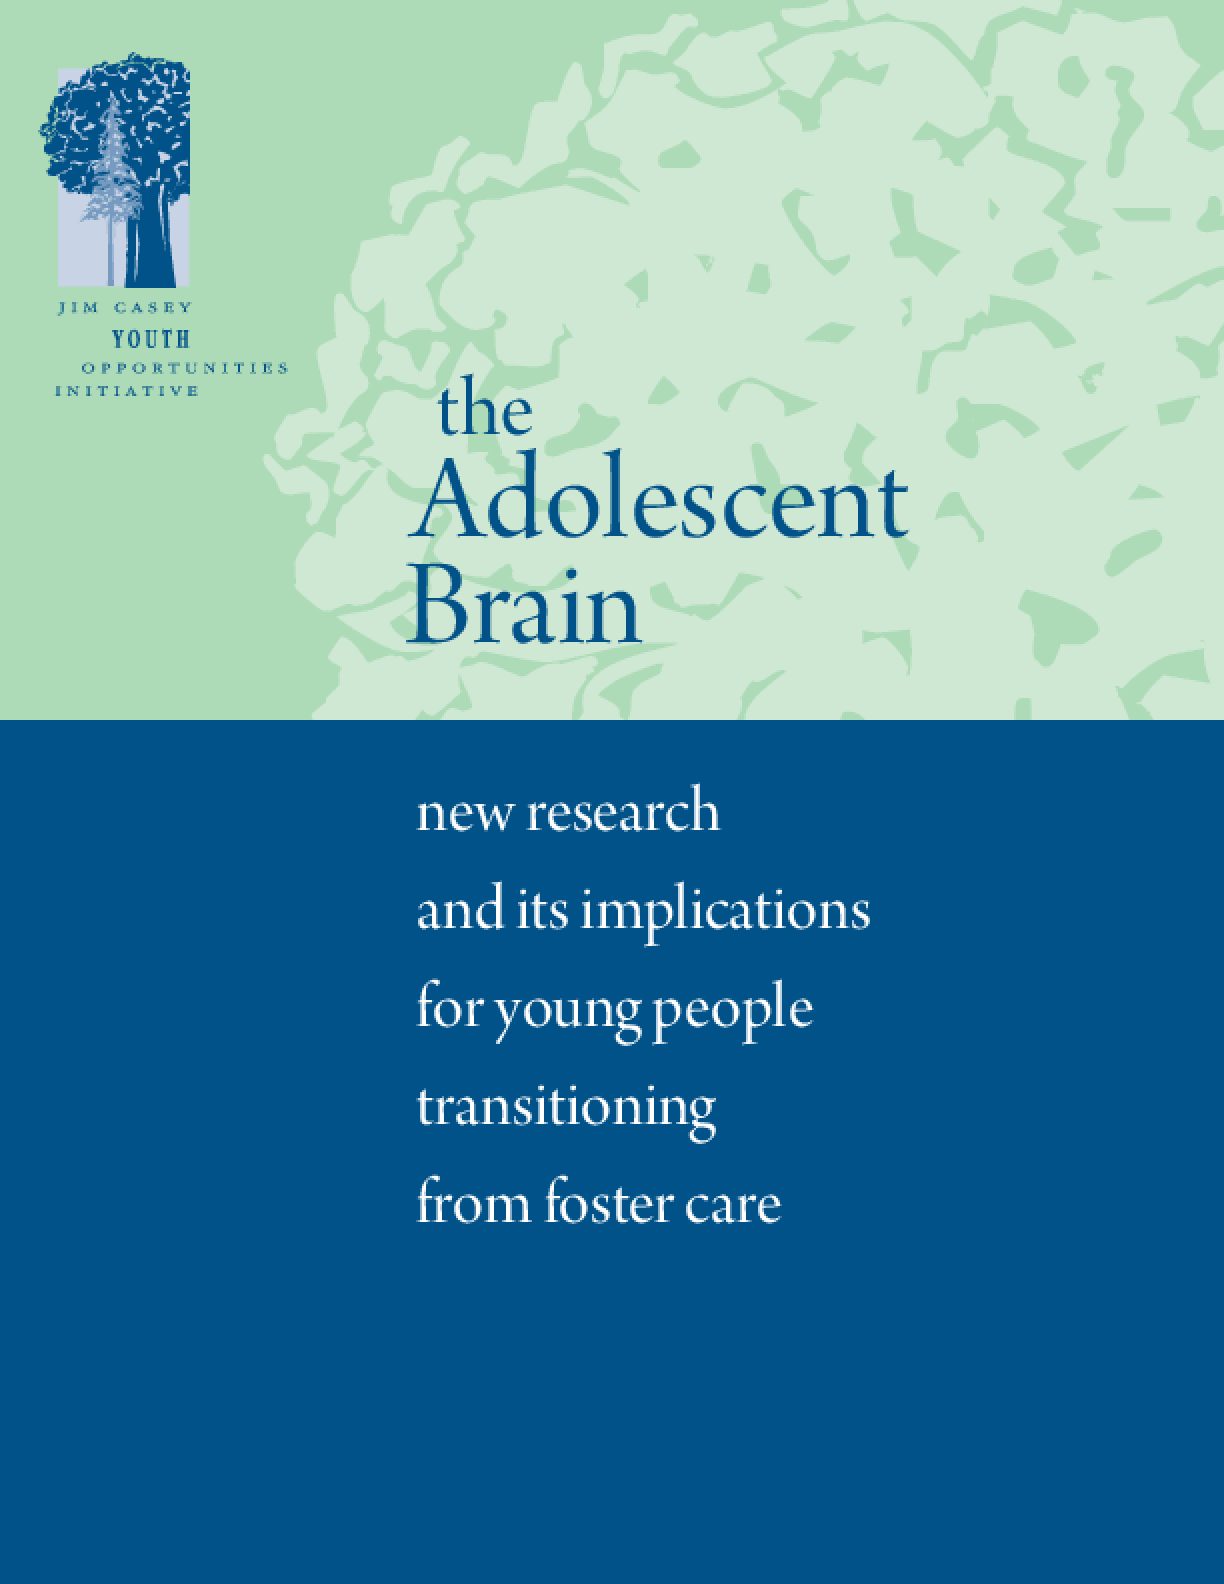 The Adolescent Brain: New Research and Its Implications for Young People Transitioning From Foster Care